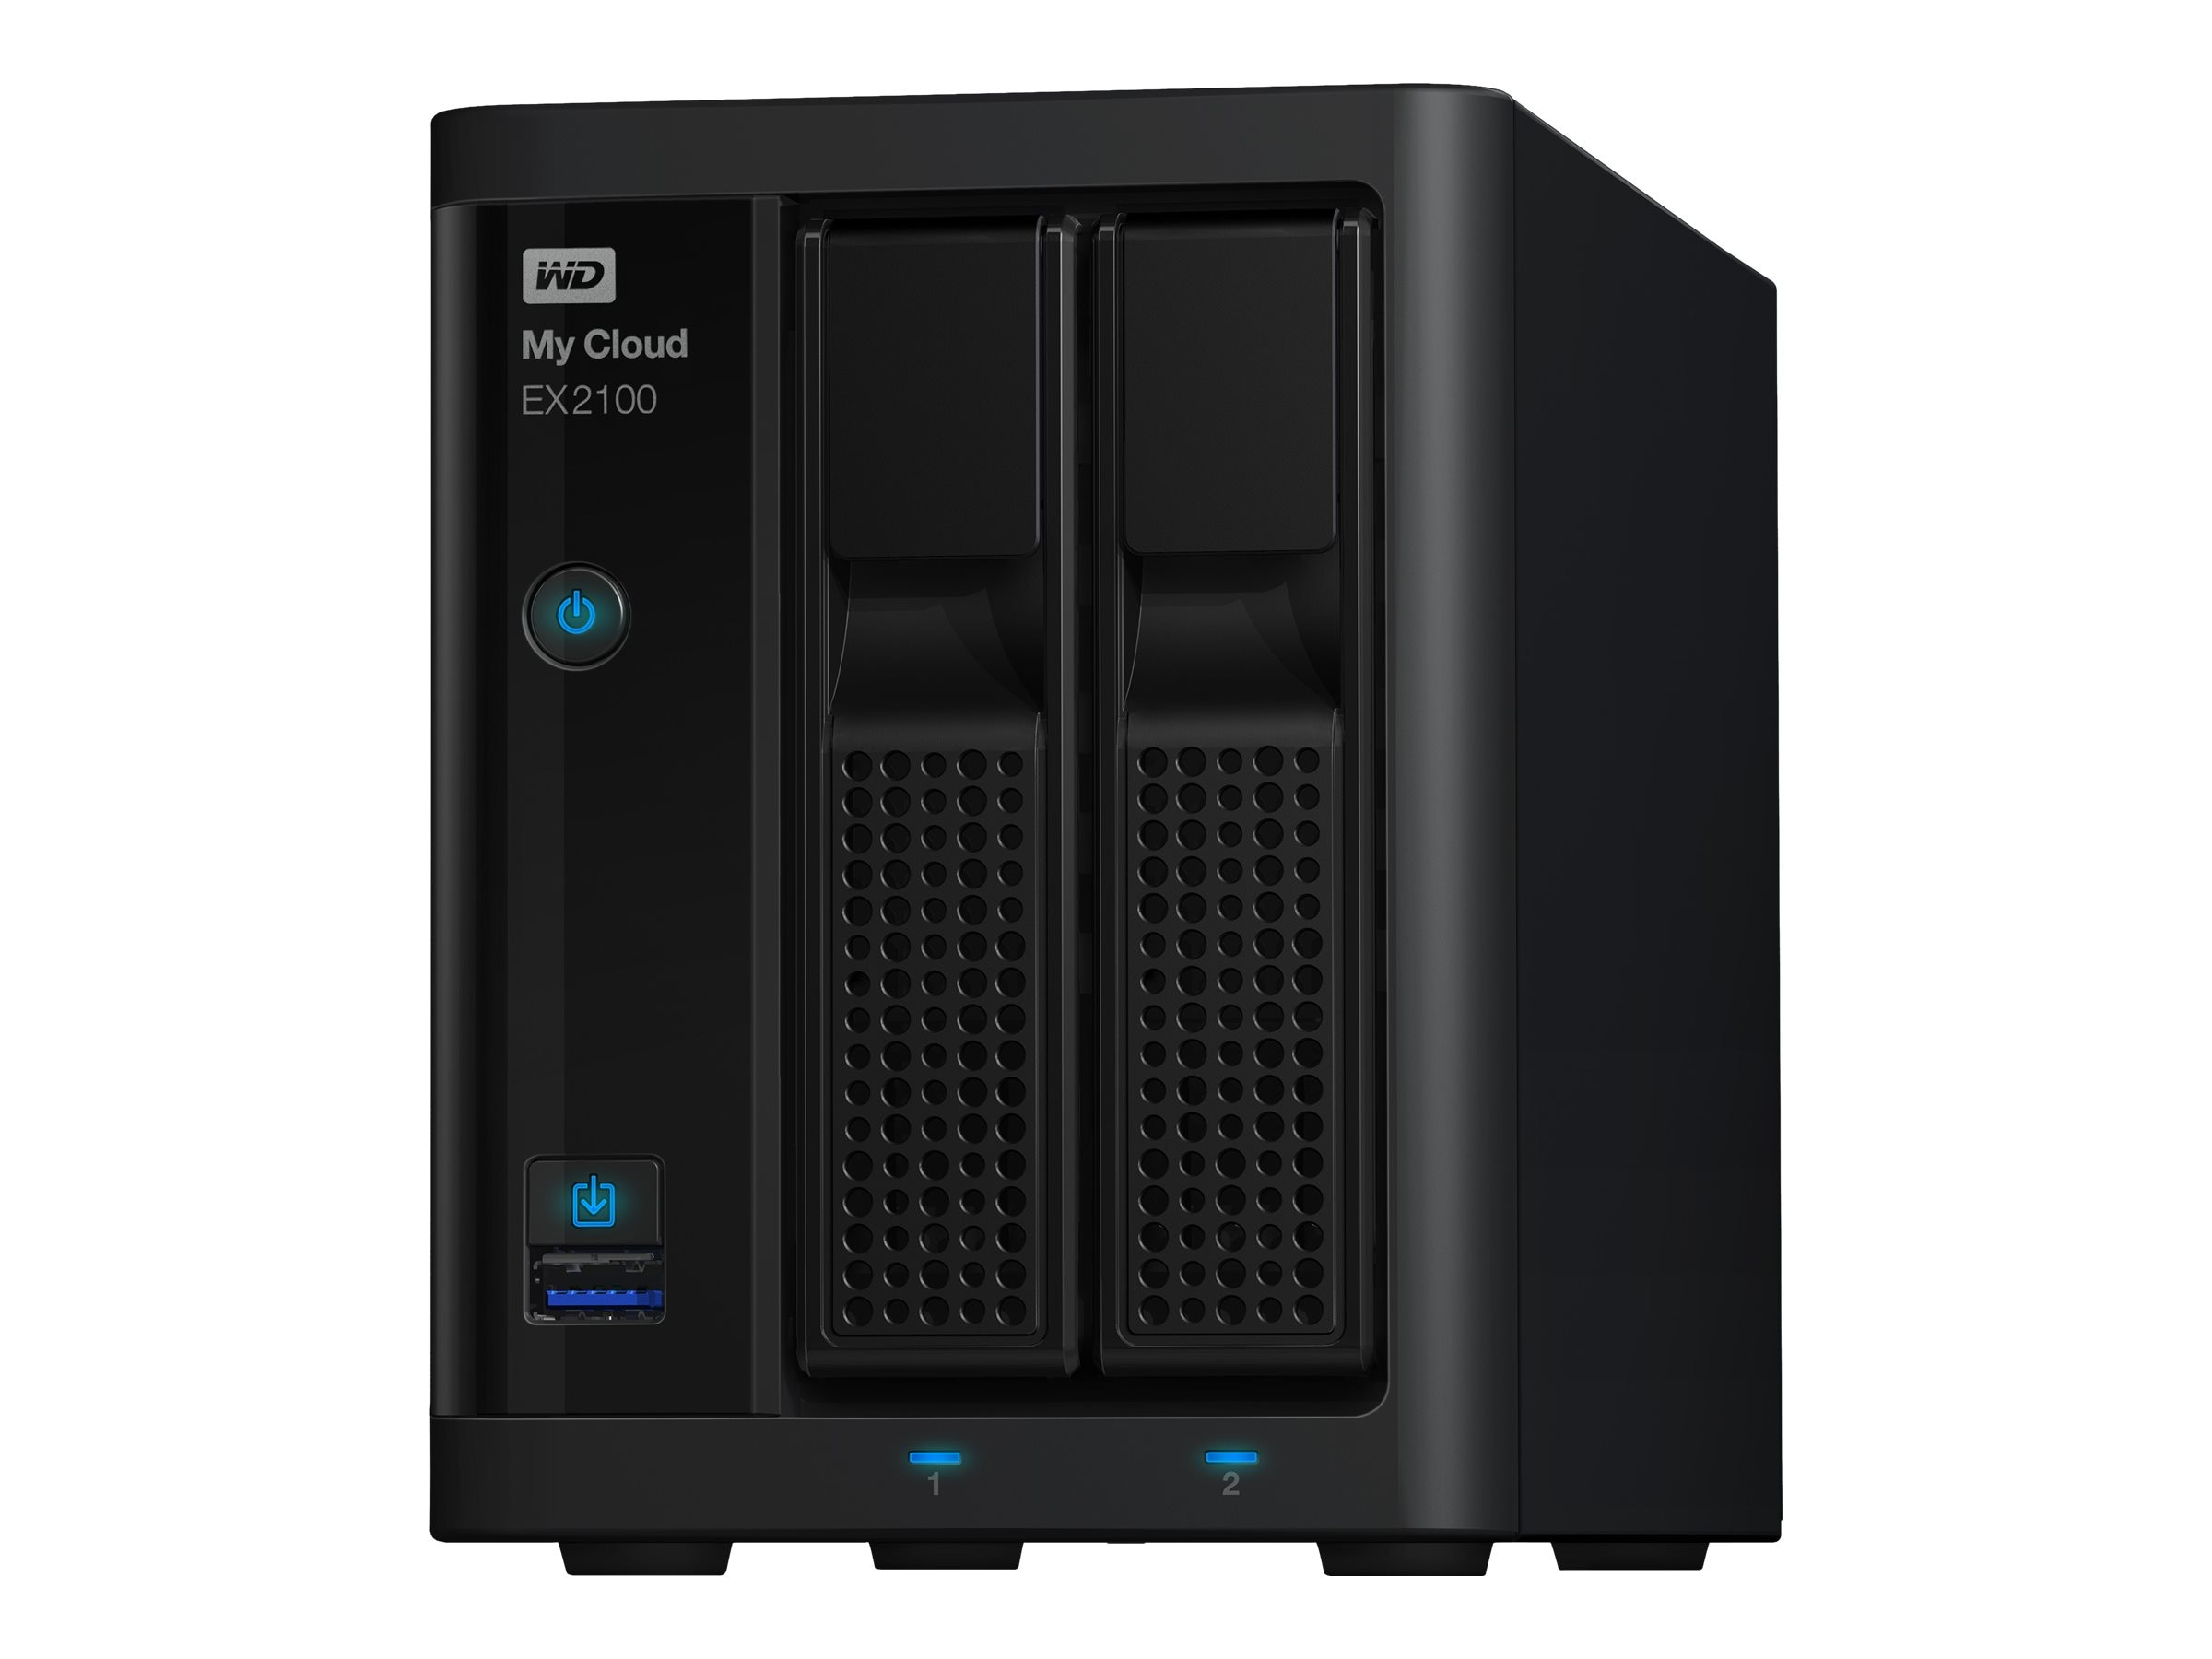 WD My Cloud EX2100 Network Attached Storage - Diskless, WDBWAZ0000NBK-NESN, 18442798, Network Attached Storage